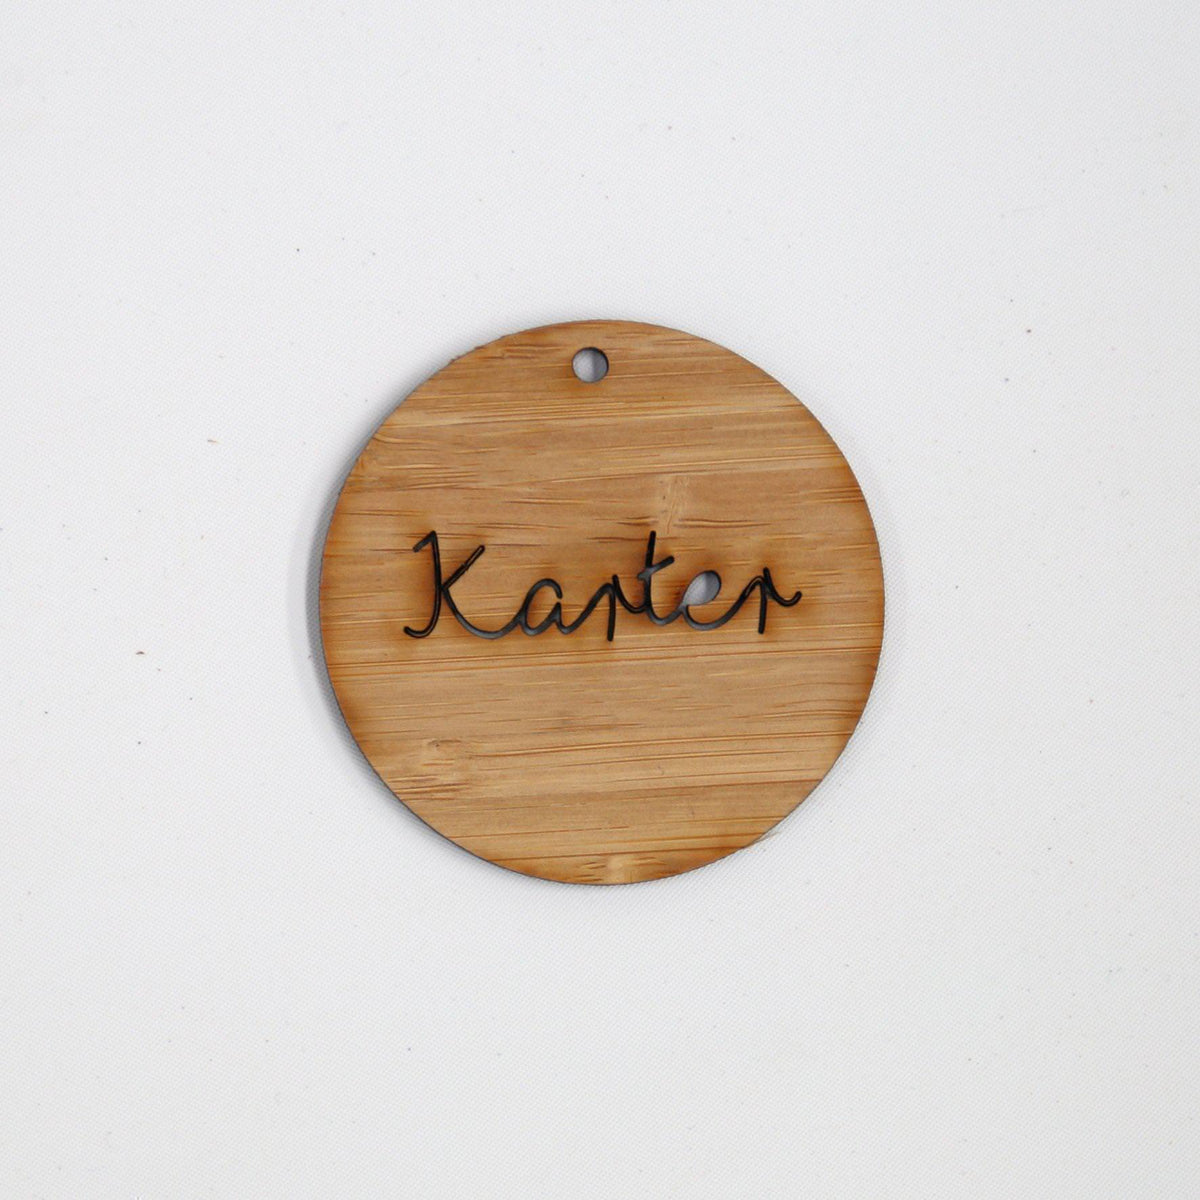 Sample / Second: Wooden Plaque